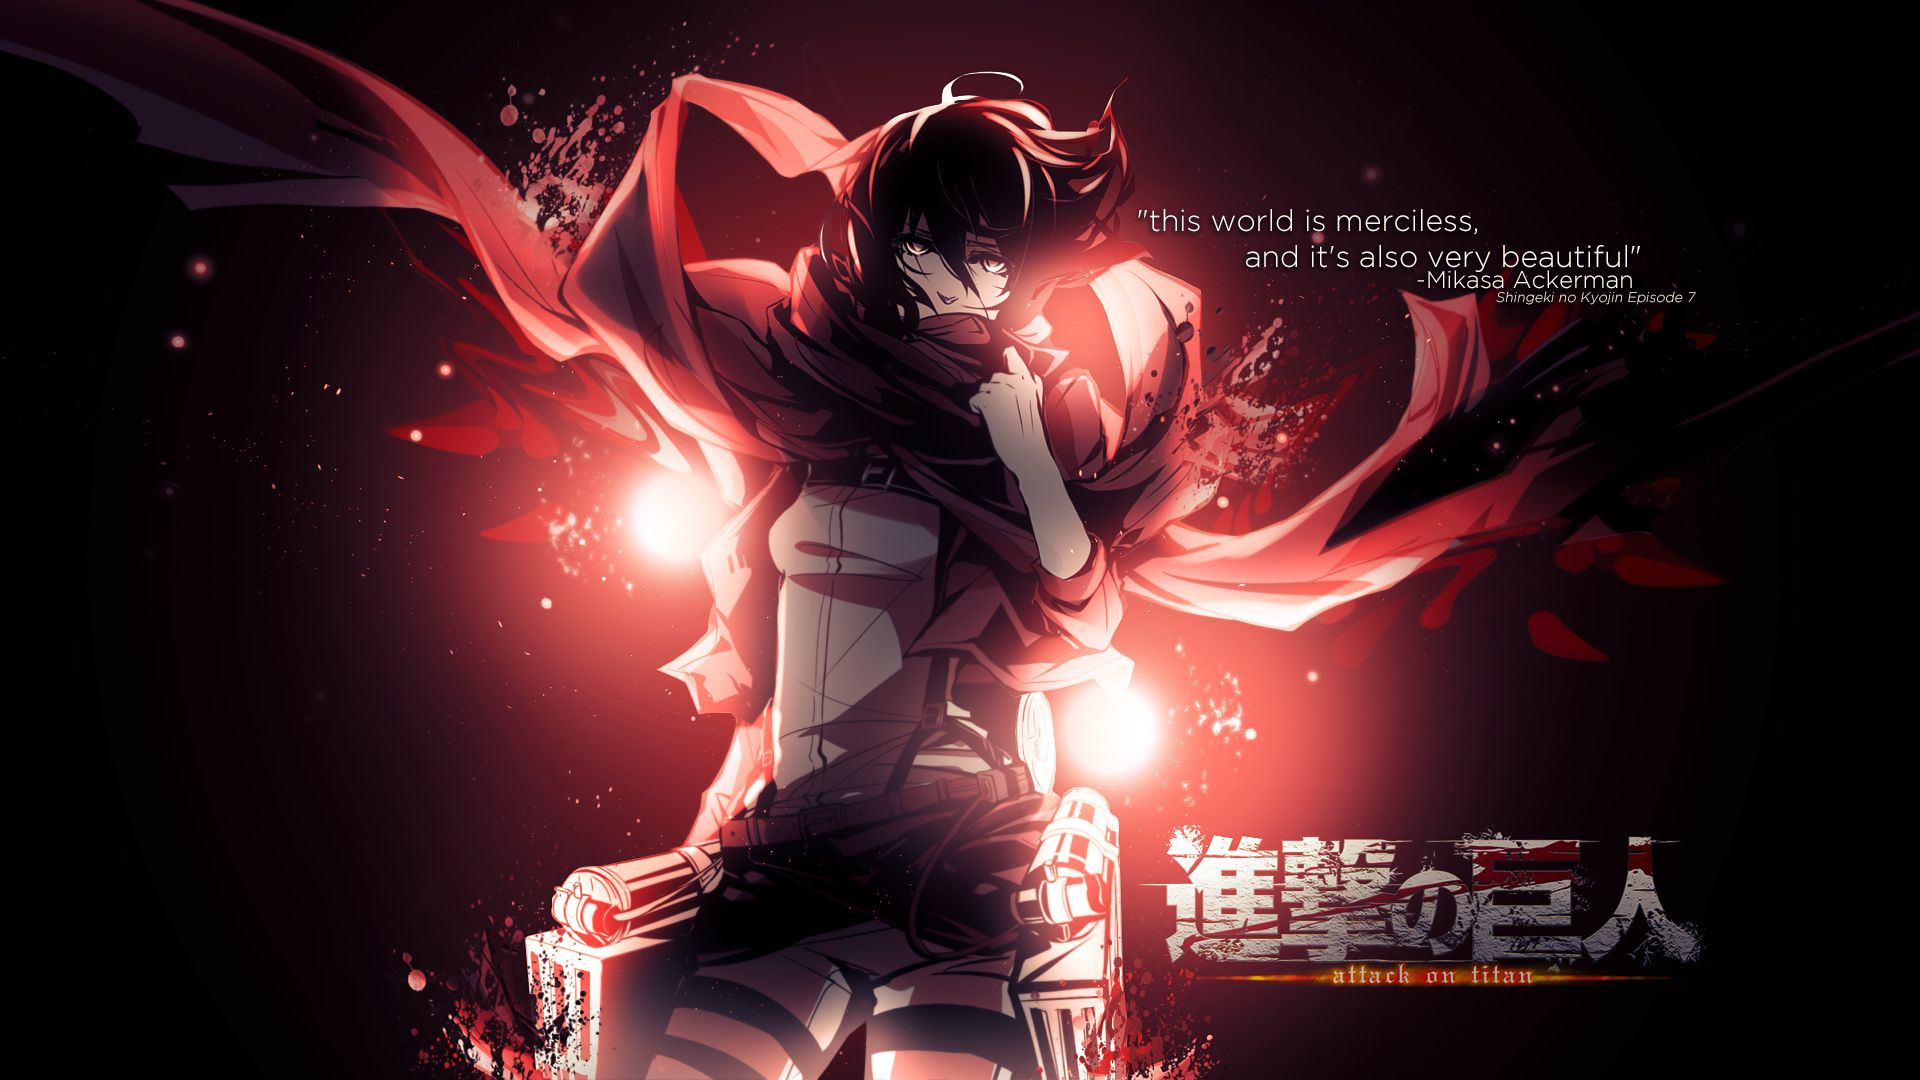 My Fav Character From Attack On Titian Attack On Titan Anime Wallpaper Cool Anime Wallpapers